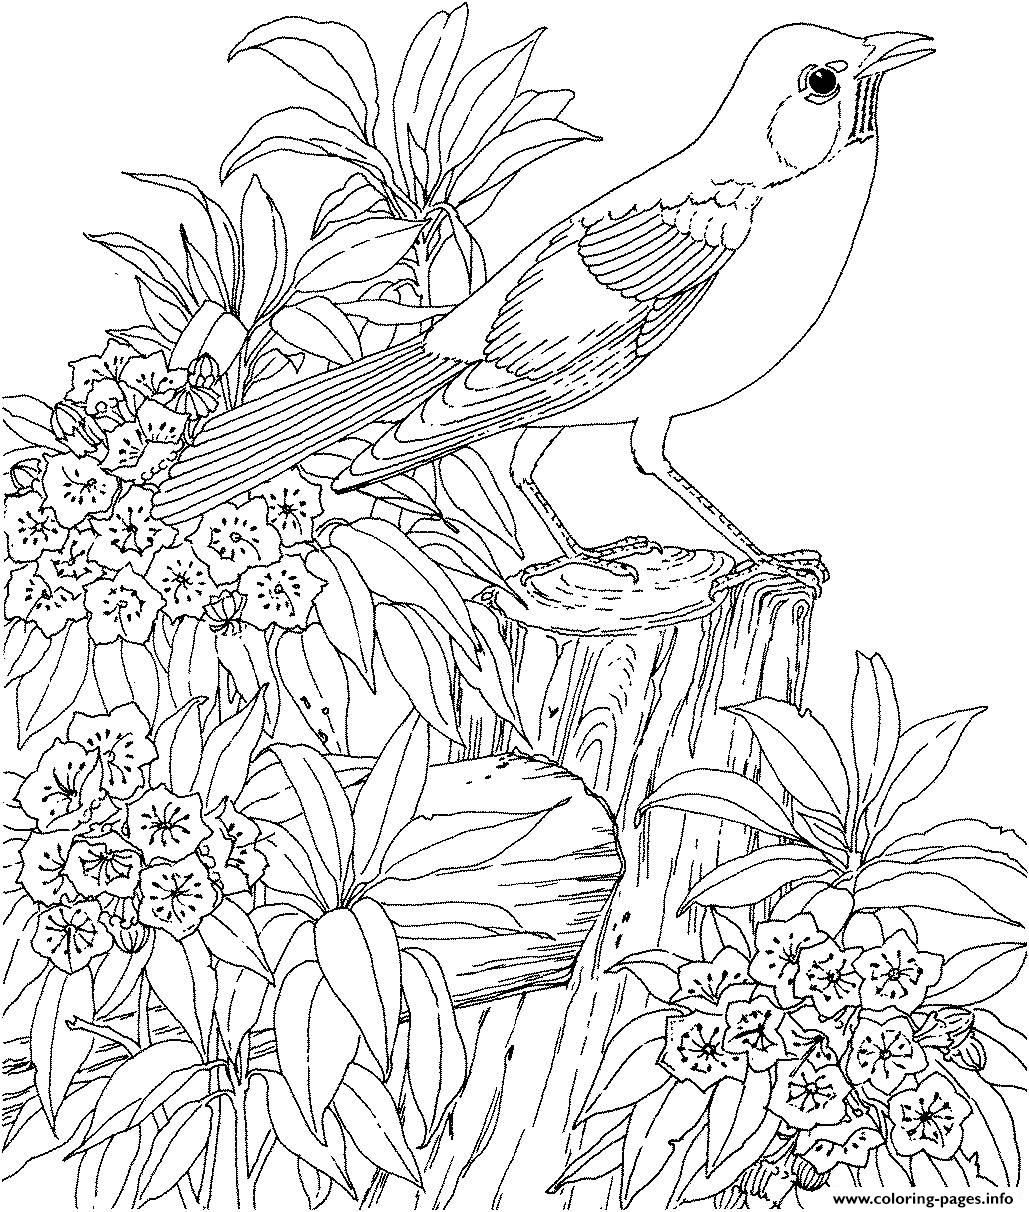 Print Beautiful Bird And Flower Coloring Pages Bird Coloring Pages Garden Coloring Pages Animal Coloring Pages